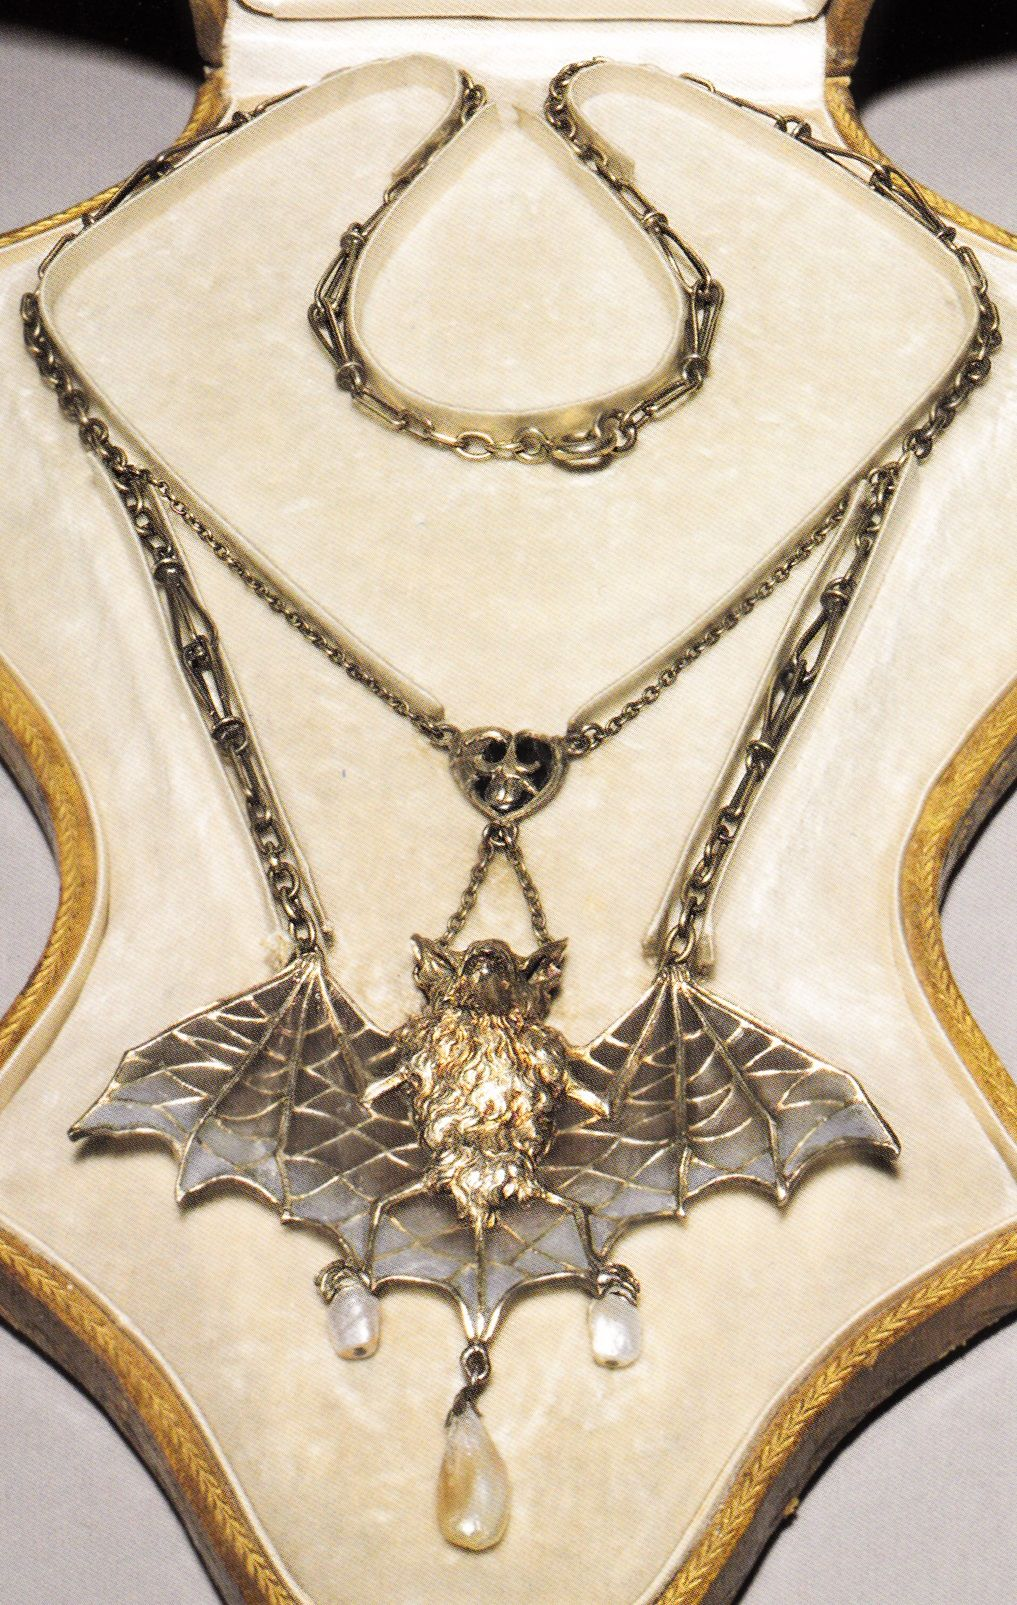 An Art Nouveau Bat Necklace Attributed To Lucien Janvier Circa 1900 Composed Of Silver Gilt Plique à Jour Enamel And Pearls